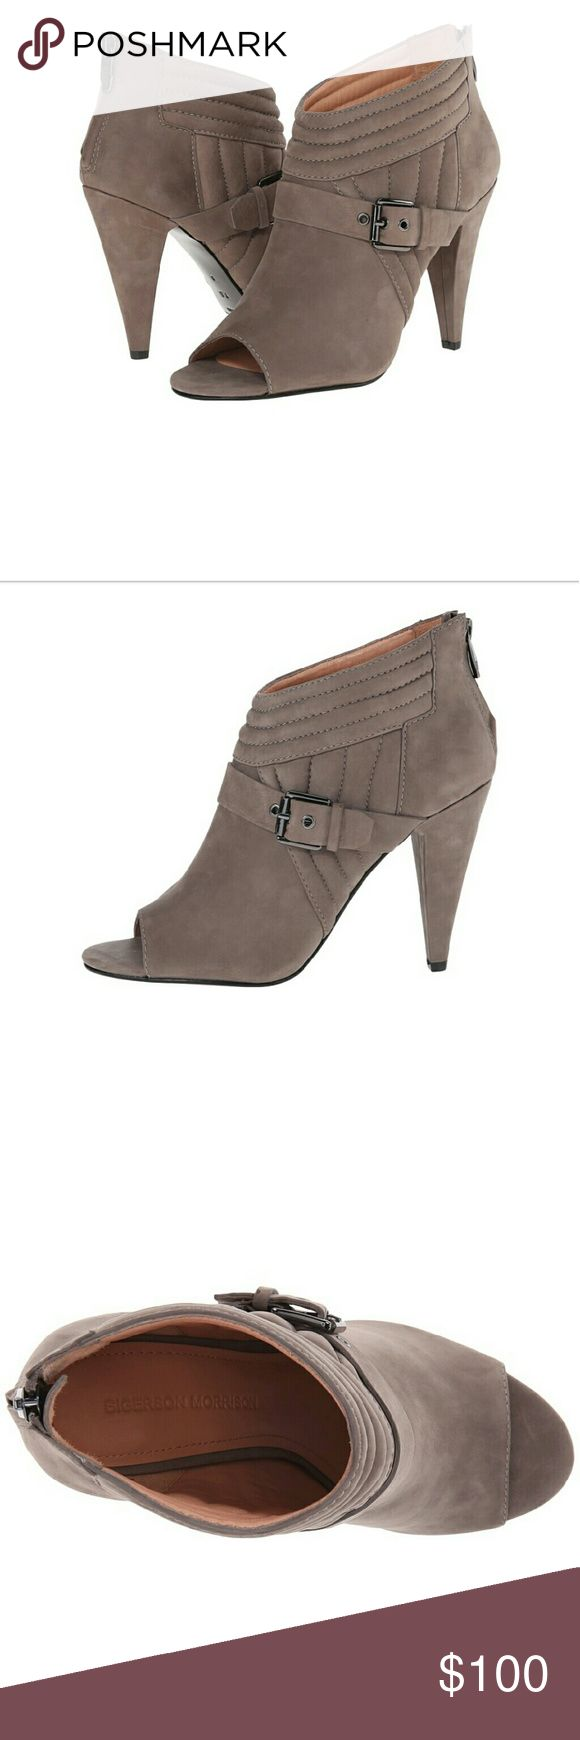 Sigerson Morrison Myla Peep Toe Moto Boots Stunning stone grey nubuck quilted ankle boots with buckle detail. Suede leather upper. Back-zipper. Smooth leather lining. Lightly padded leather footbed. Wrapped heel. Leather outsole. Brand New, never worn. Sigerson Morrison Shoes Ankle Boots & Booties